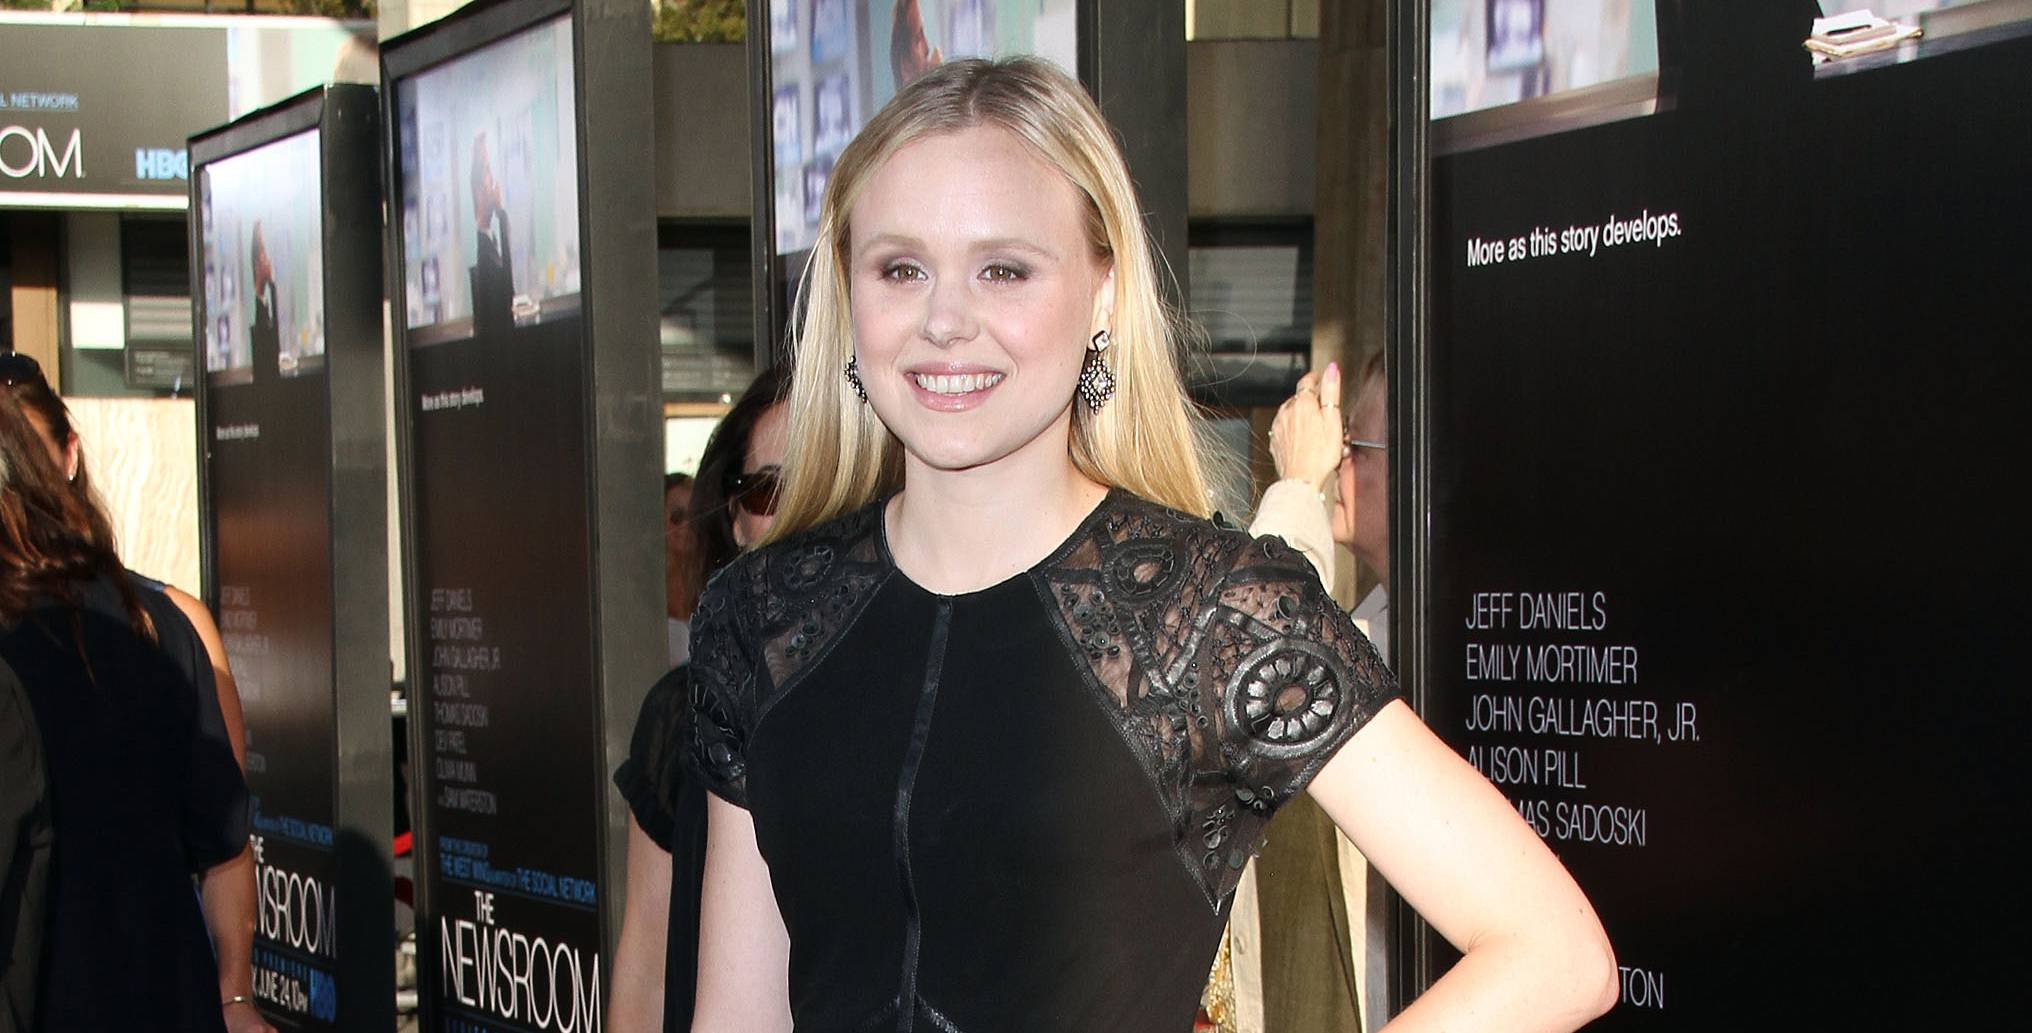 Alison Pill Sex Scene alison pill accidentally tweeted a topless pic of herself